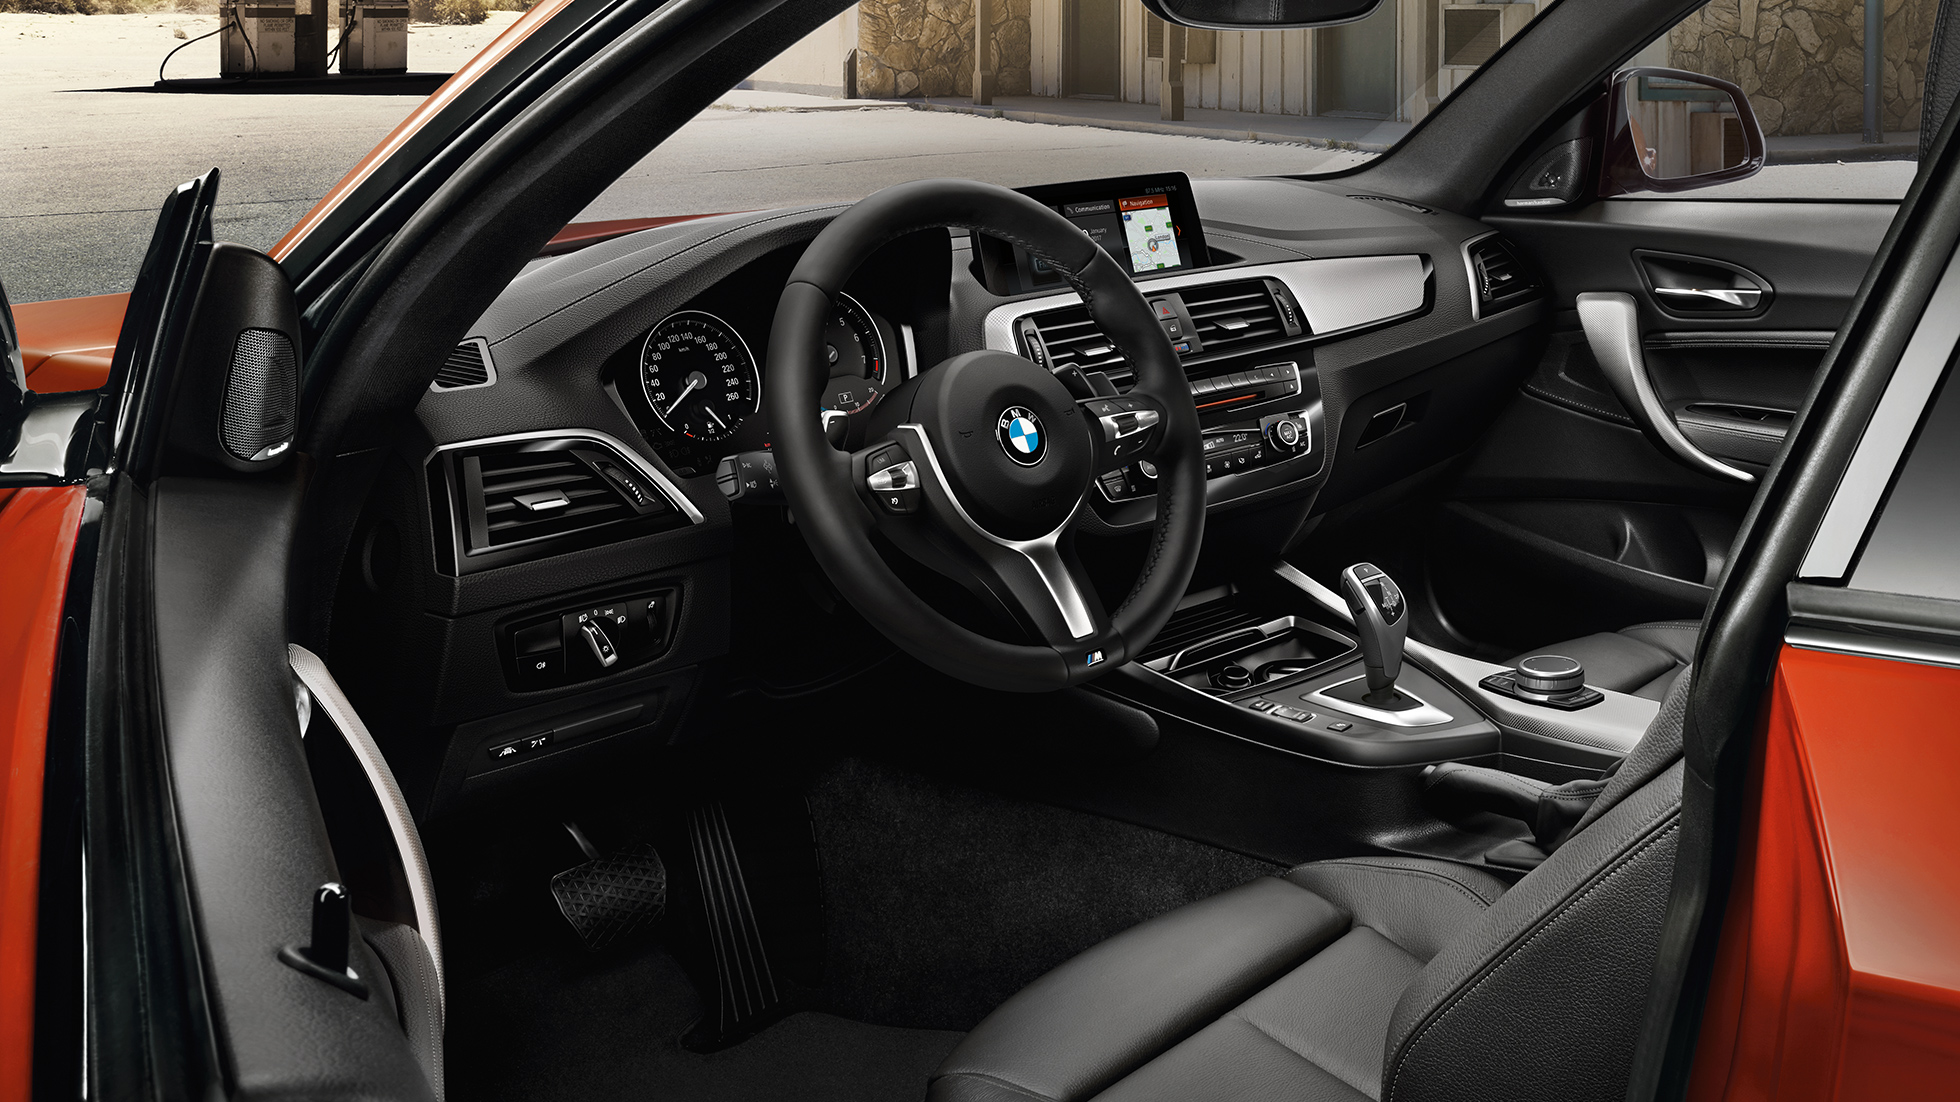 BMW 2 Series Coupé, cockpit